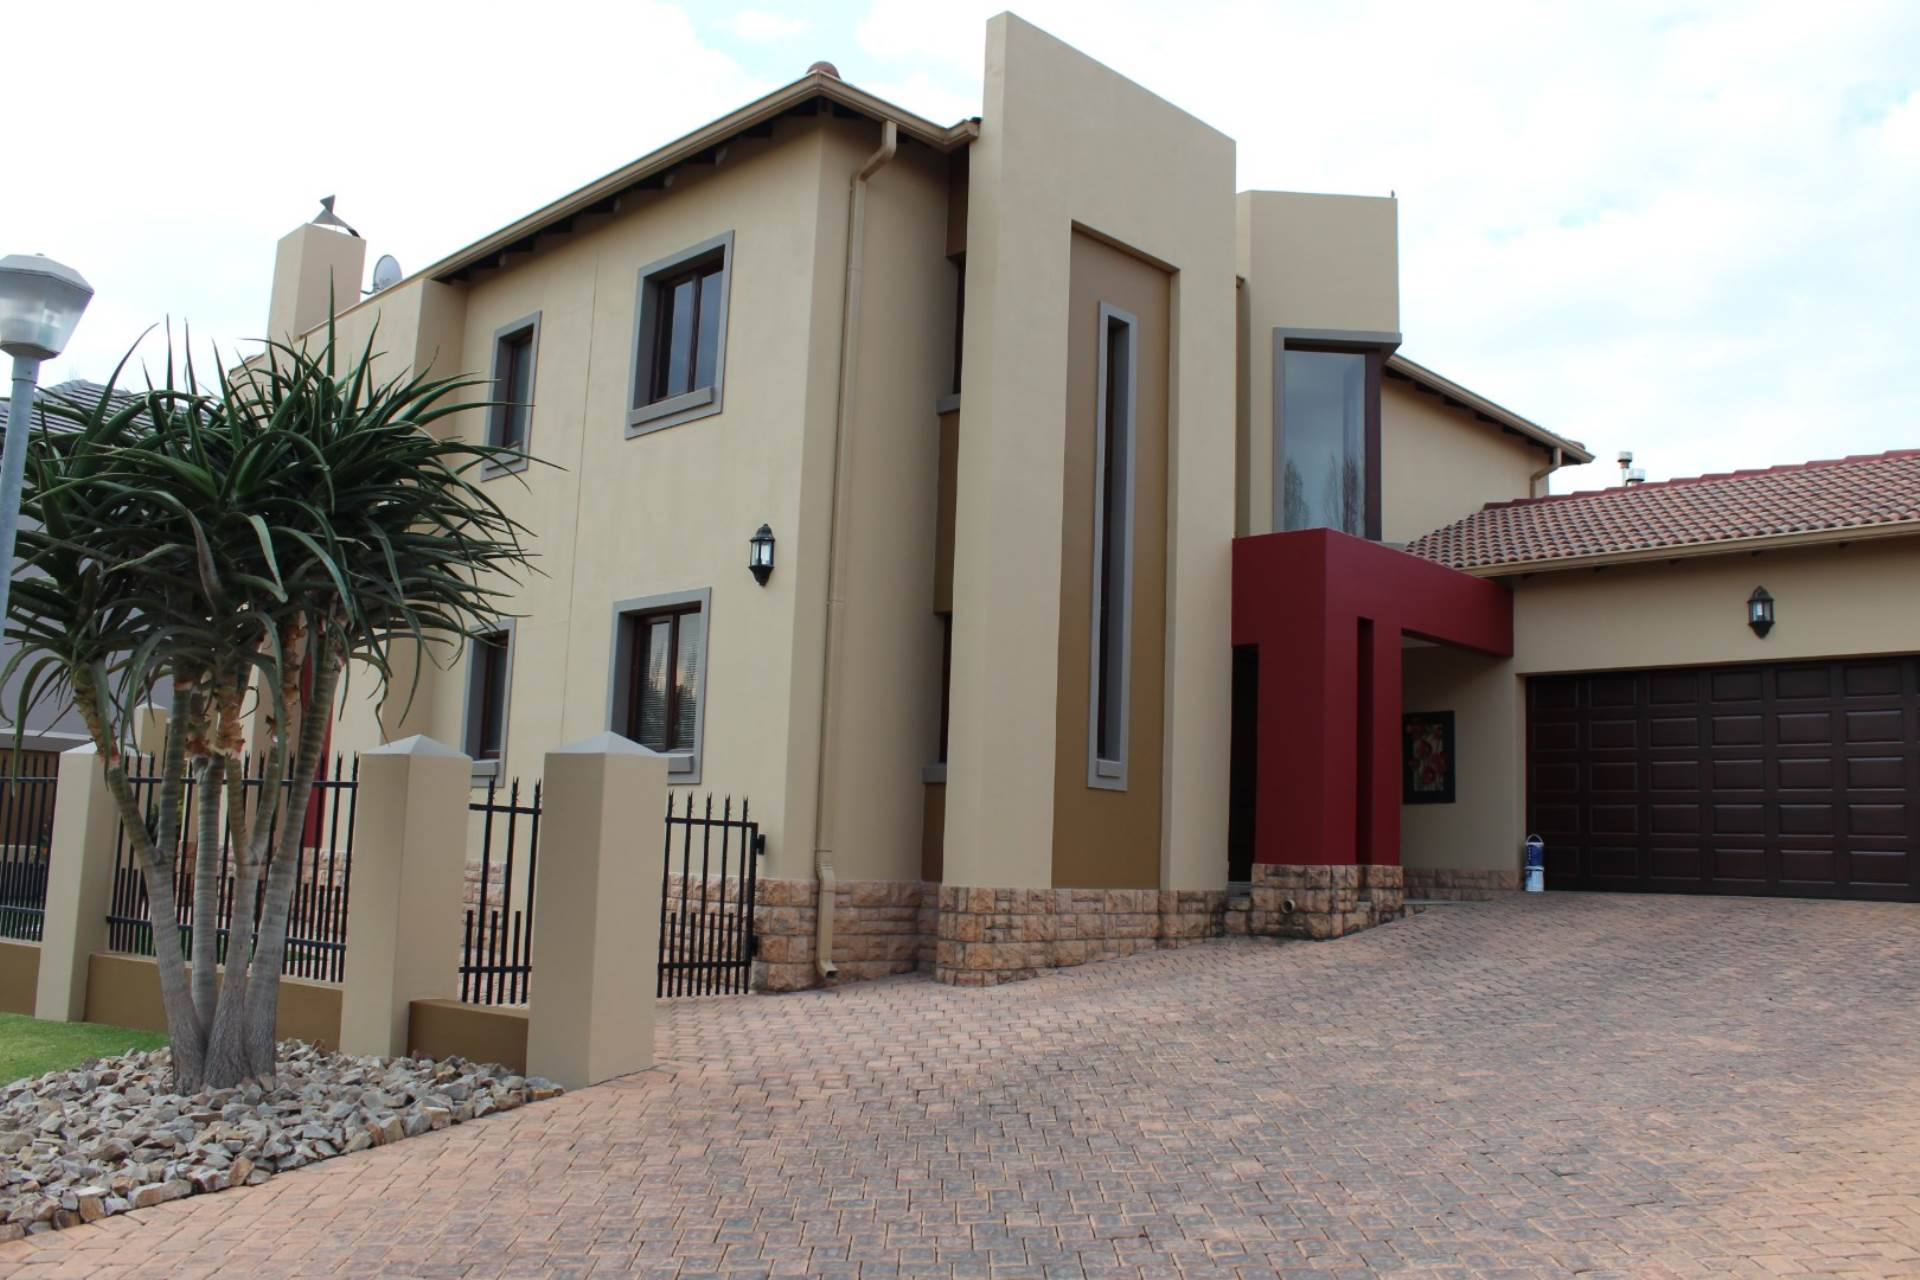 Pretoria, Rietvalleirand Ext 33 Property  | Houses For Sale Rietvalleirand Ext 33, RIETVALLEIRAND Ext 33, House 3 bedrooms property for sale Price:3,700,000